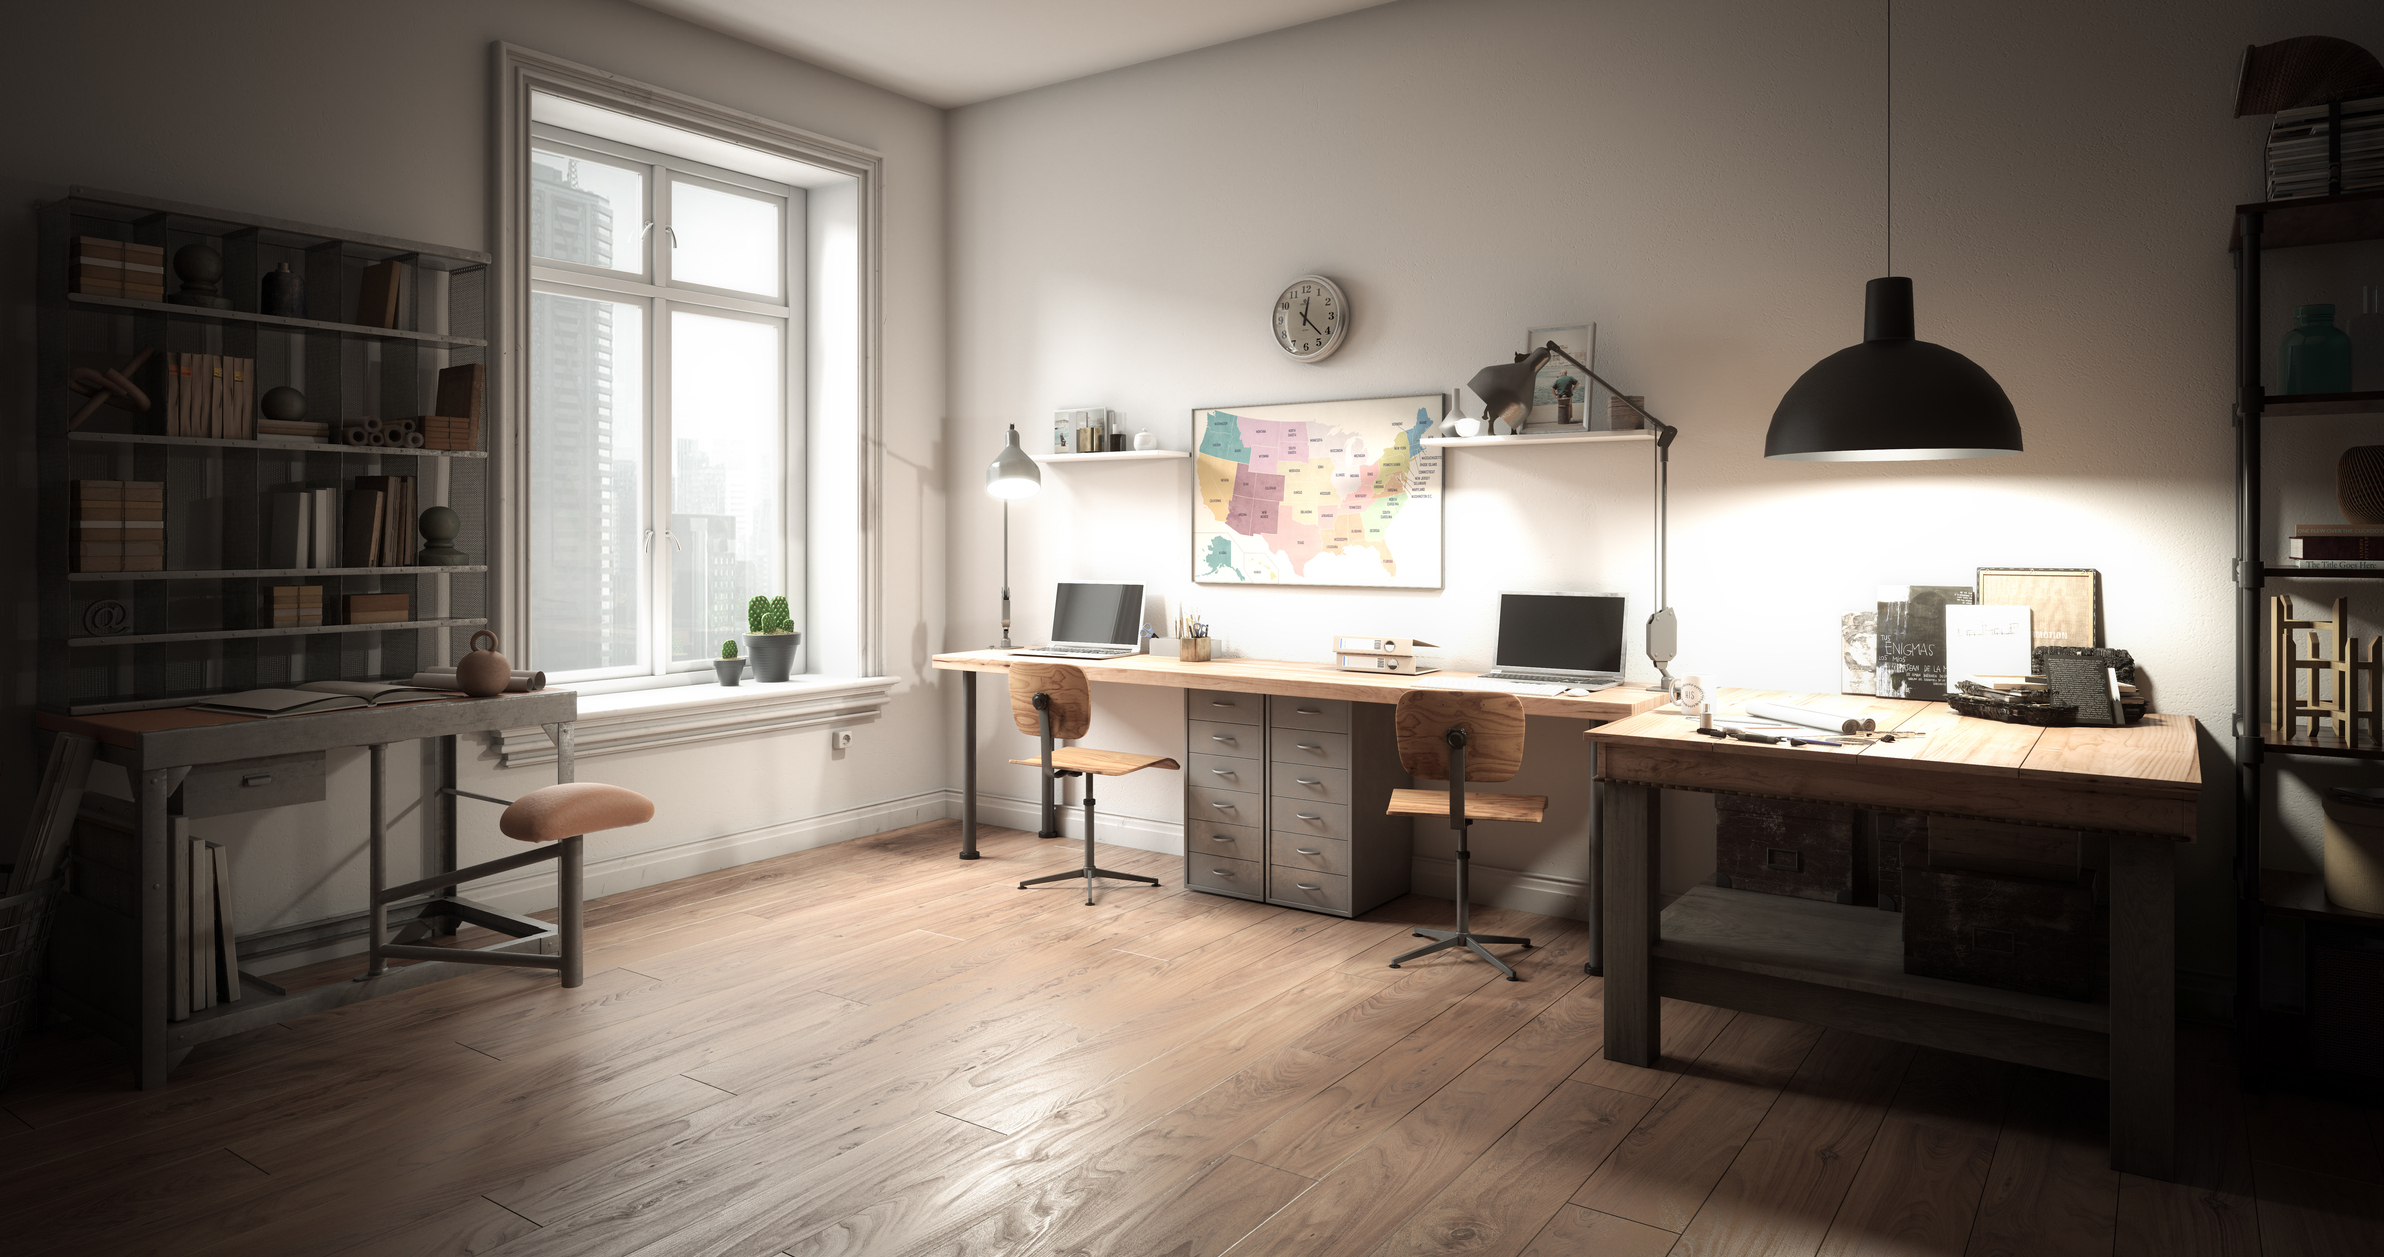 Home Office Ideas for Everyone